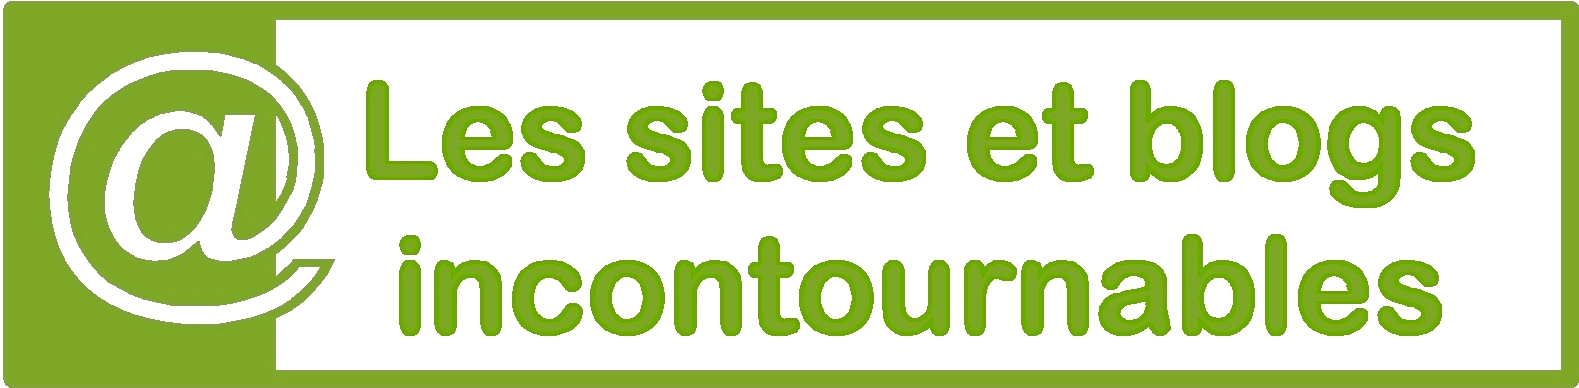 Sites et blogs incontournables